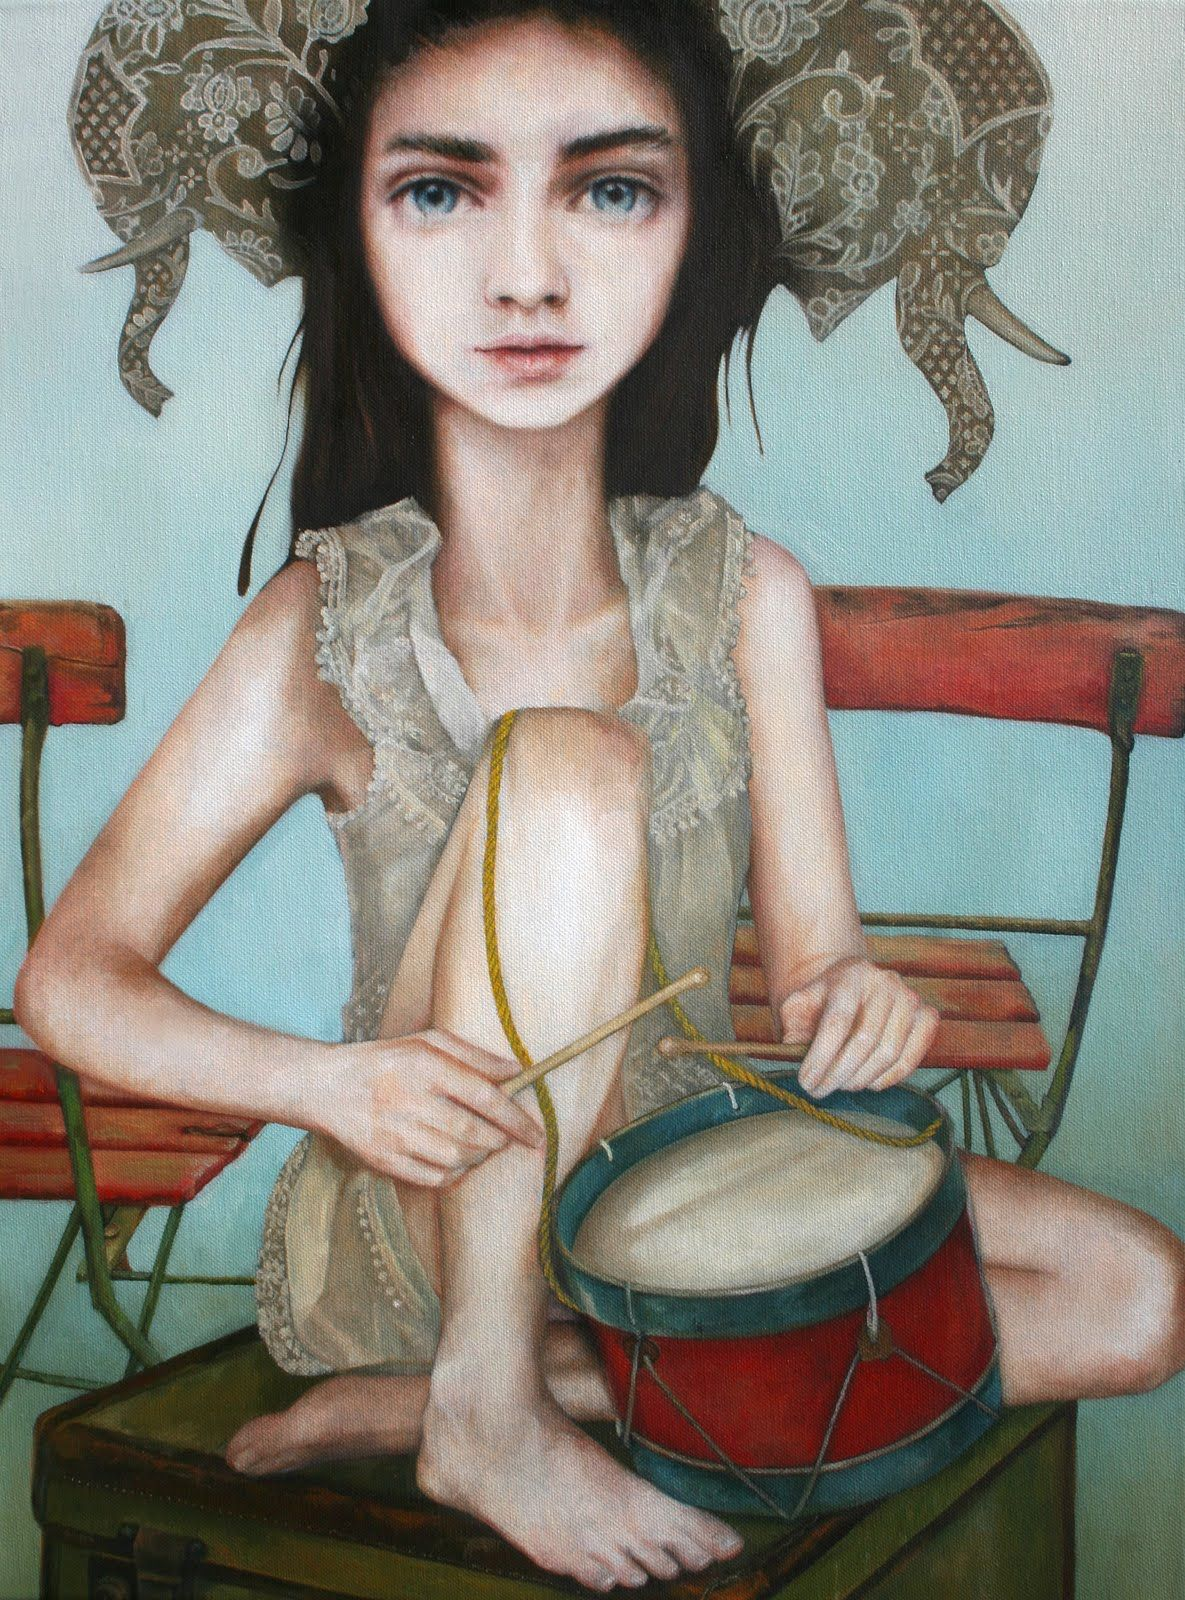 The Elephant March, by Nom Kinnear King. ArtisticMoods: posting on Facebook  Twitter.